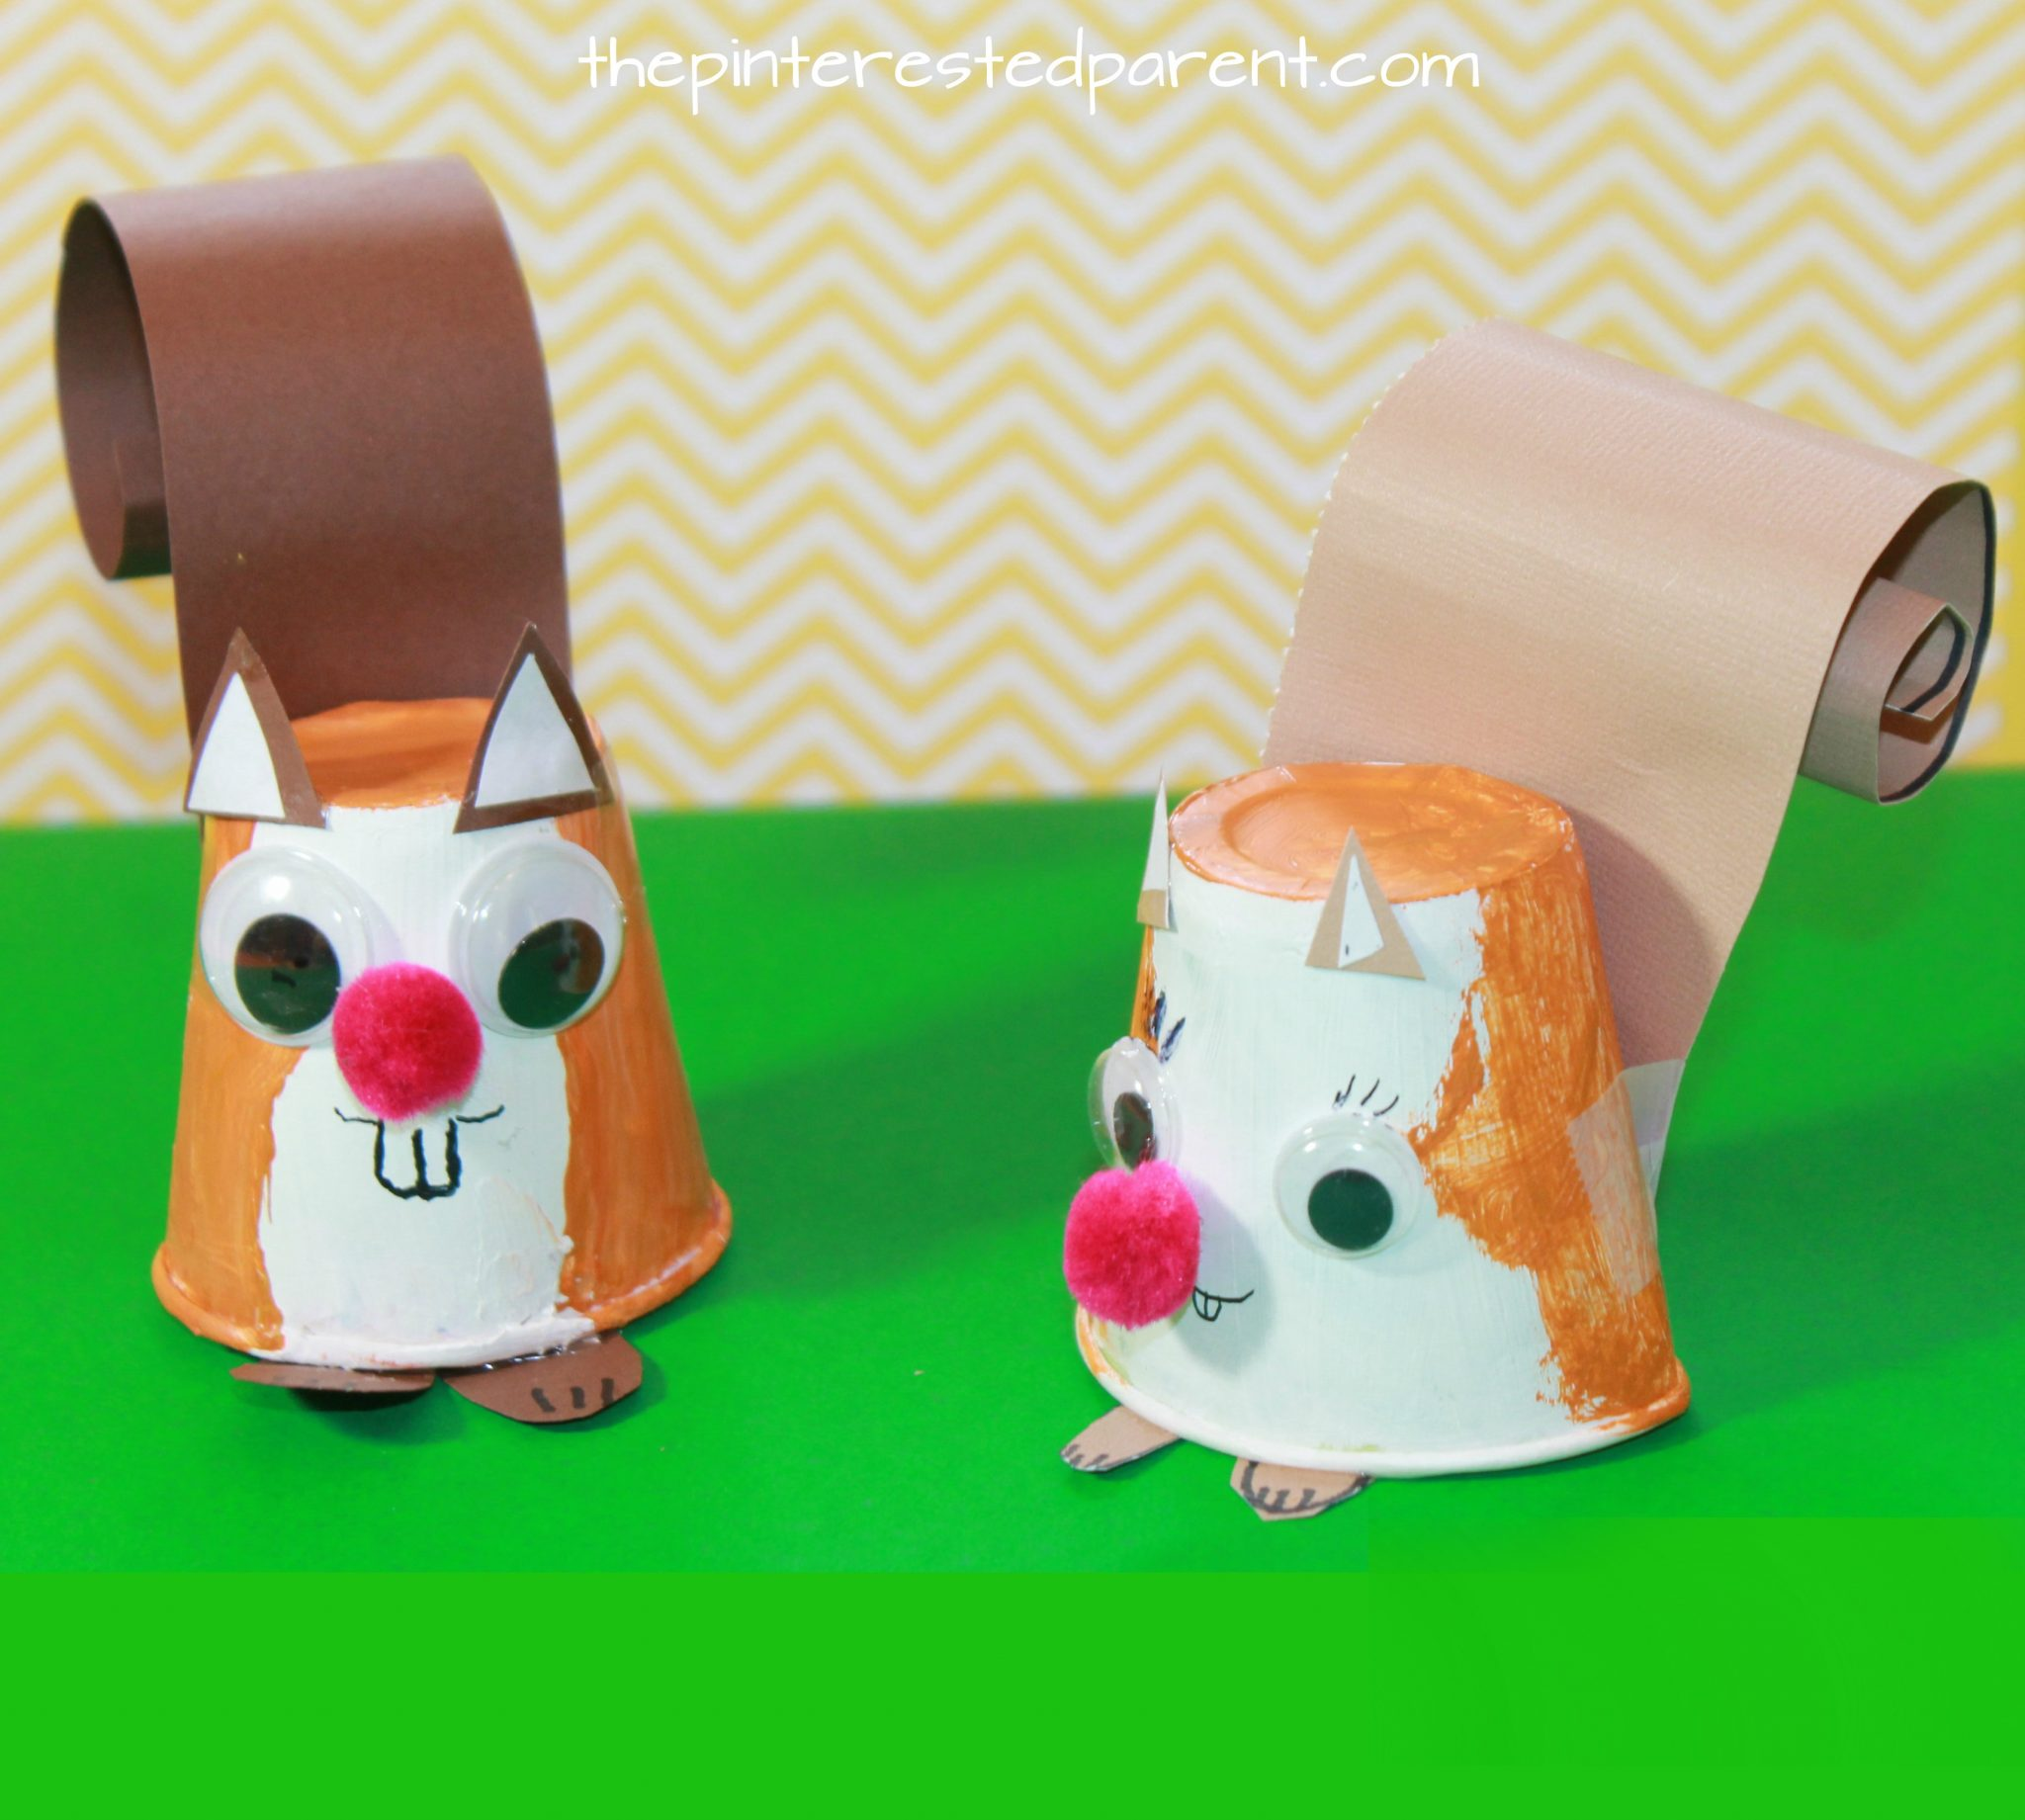 Dixie Cup Squirrel Craft The Pinterested Parent